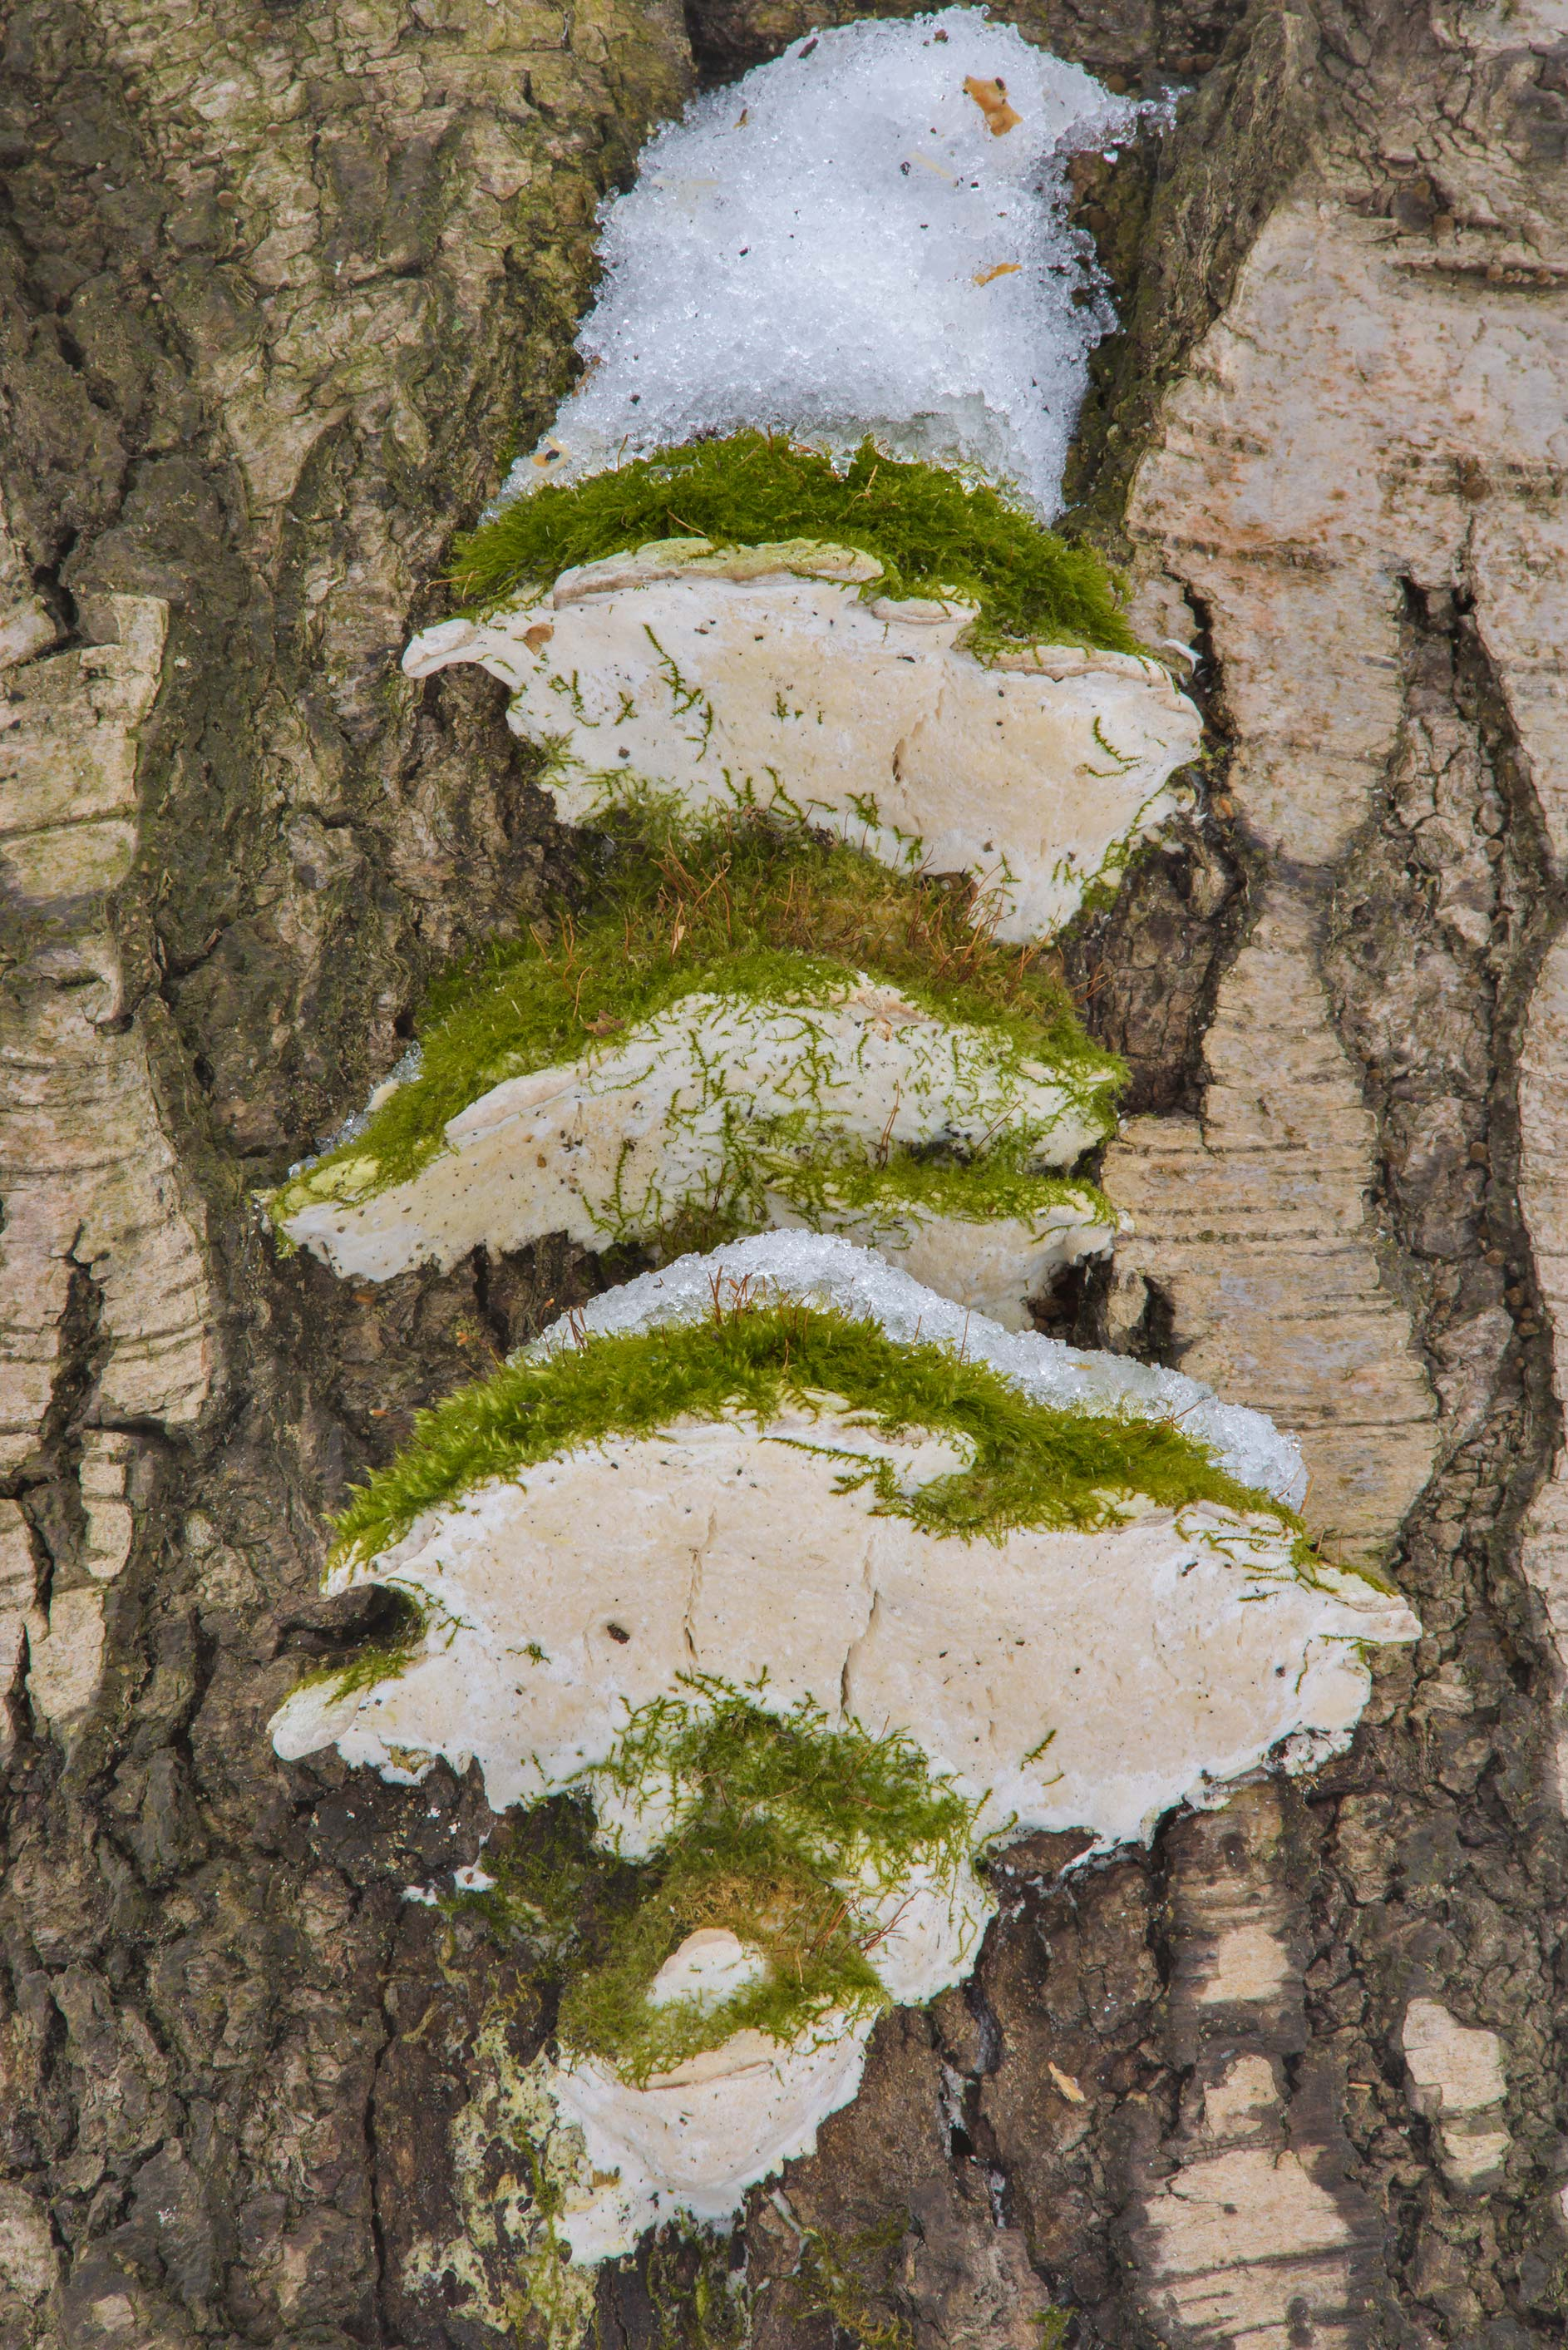 Mossy maple polypore mushrooms (Oxyporus...in Udelny Park. St.Petersburg, Russia